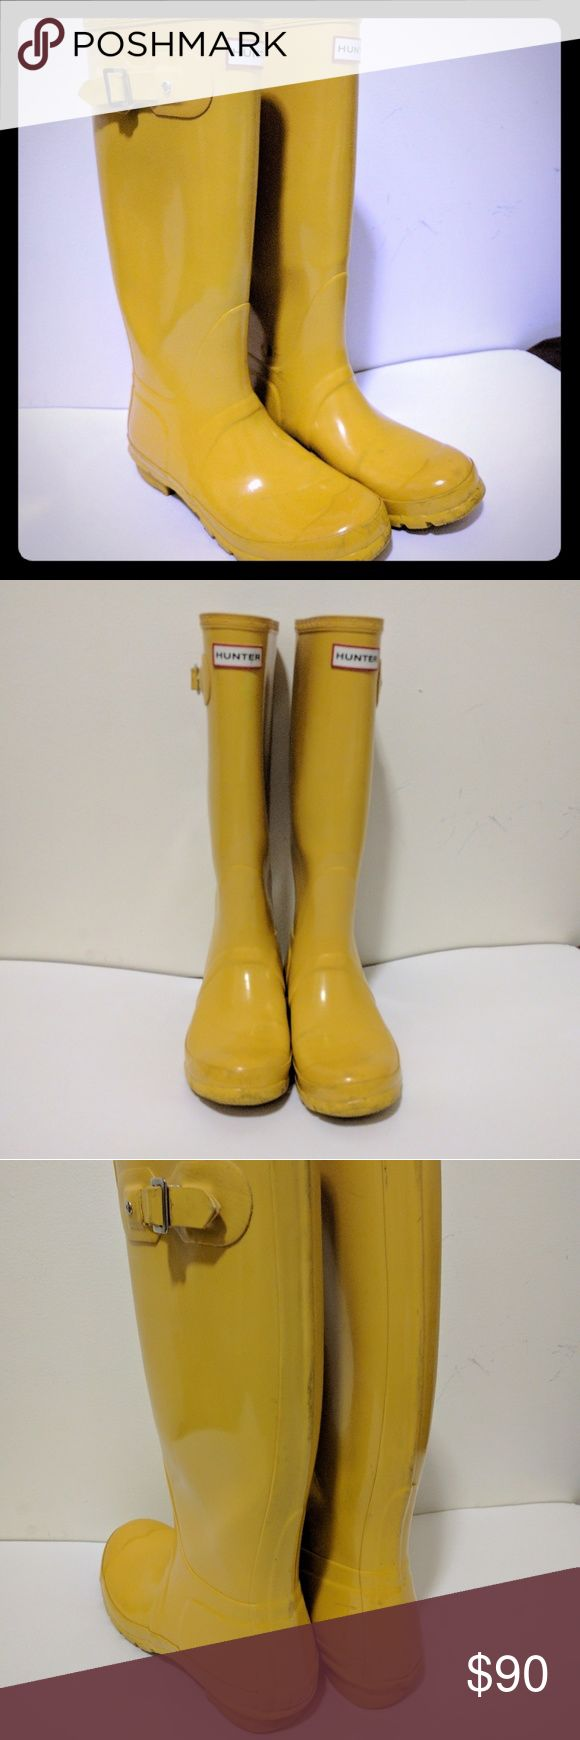 Hunter Original Tall Gloss Rain Boots Yellow Used pair of excellent Hunter boots. They are still in great shape and have a long life ahead in many puddles, do please note the scuff marks on the inner ankle. These brightened many a dreary Chicago winter's day, hope they can brightened up yours as well! Hunter Boots Shoes Winter & Rain Boots